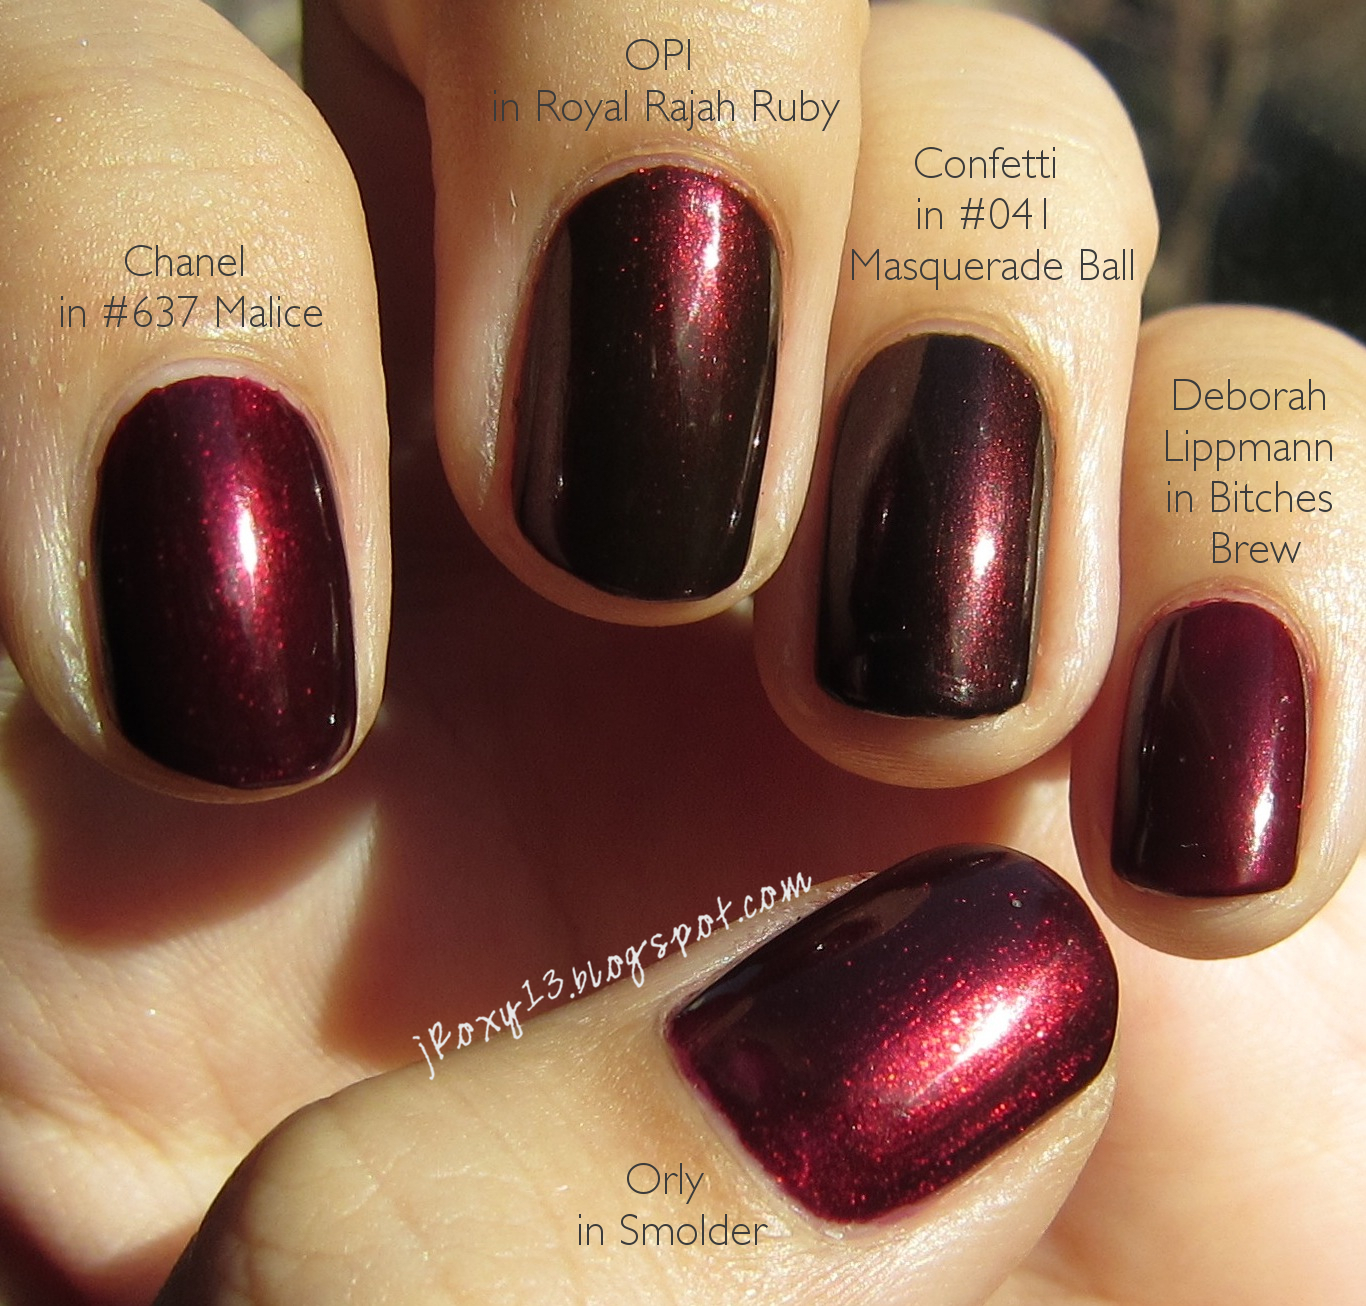 Chanel in #637 Malice Comparisons (15 polishes)